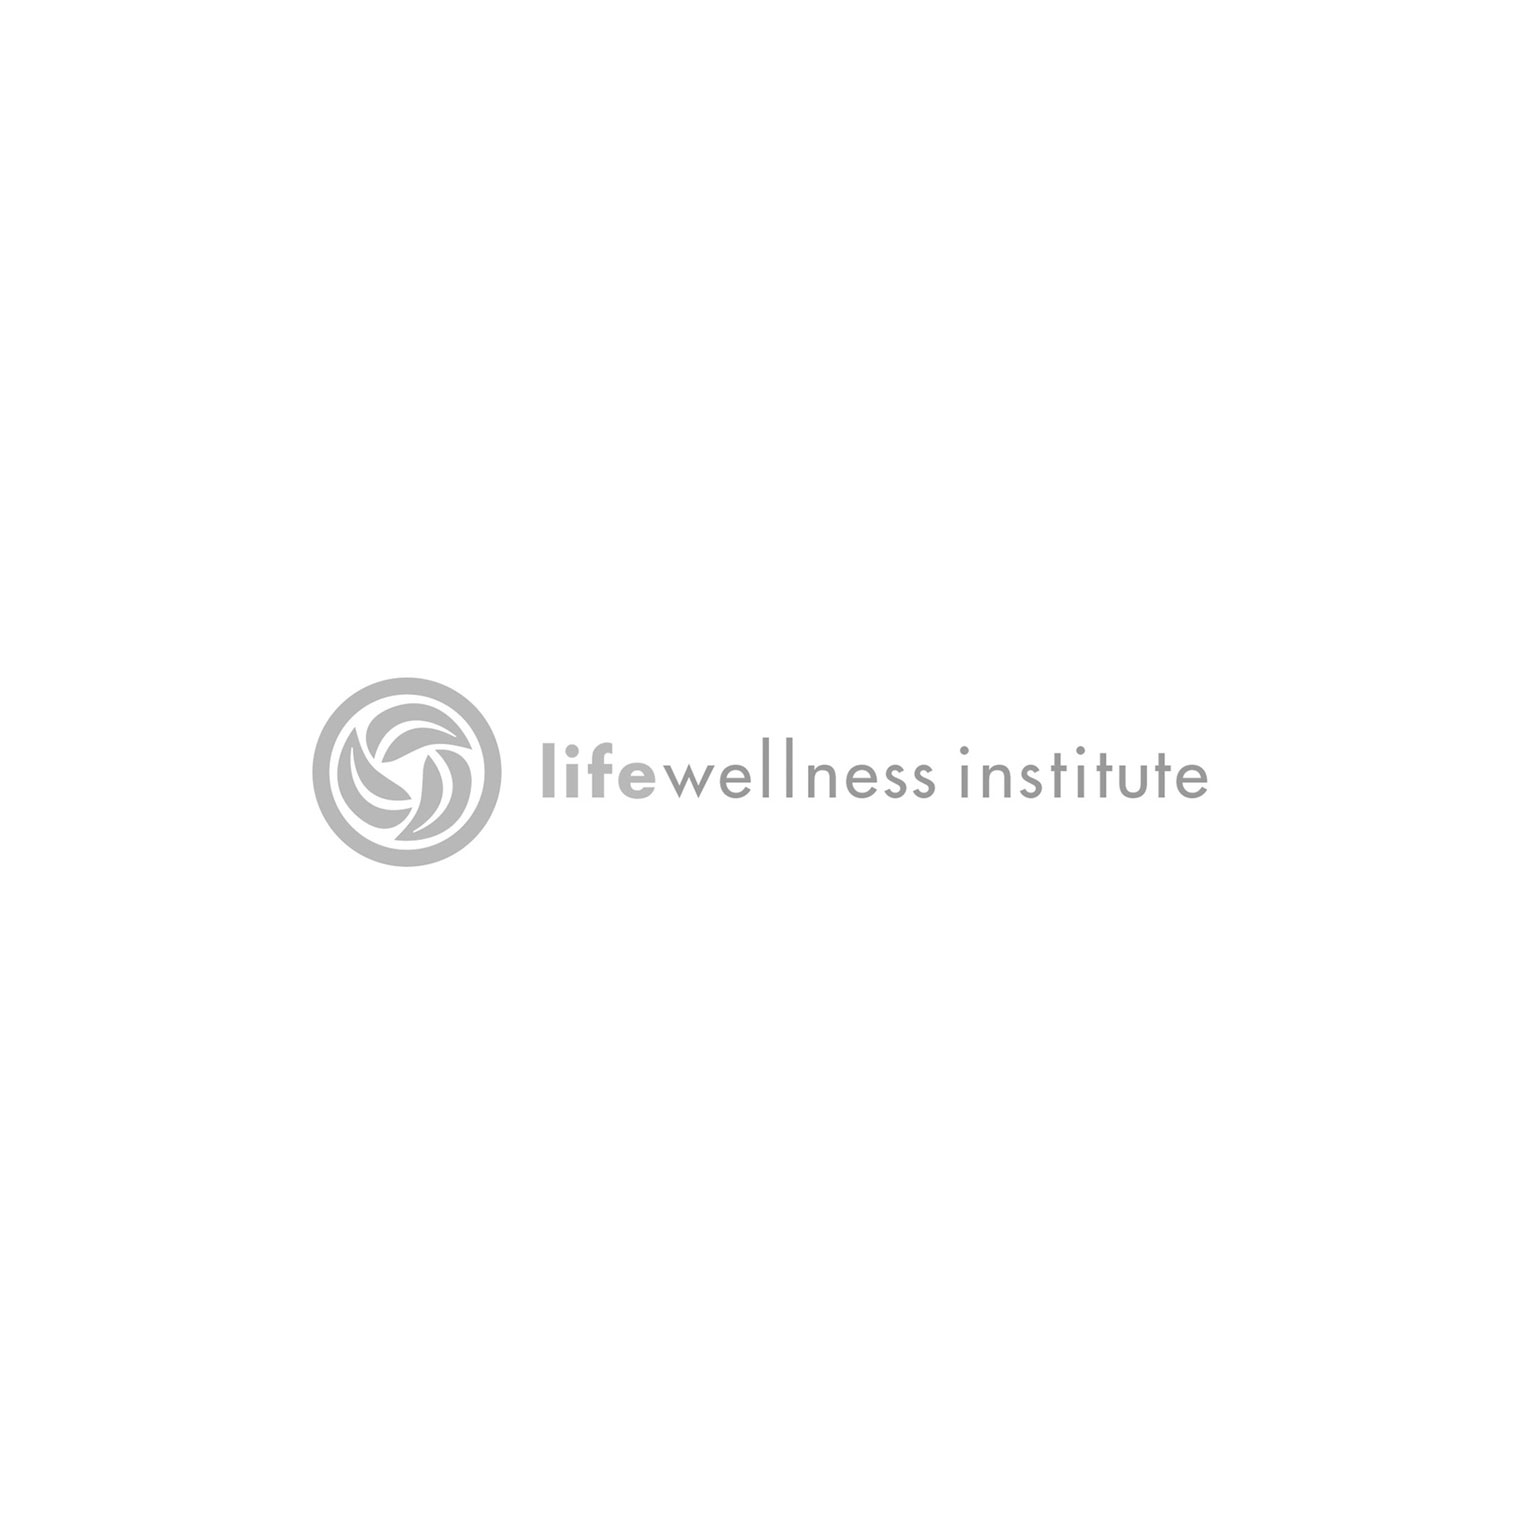 img_partner_logo_lifewellness_square_smallerx2.jpg